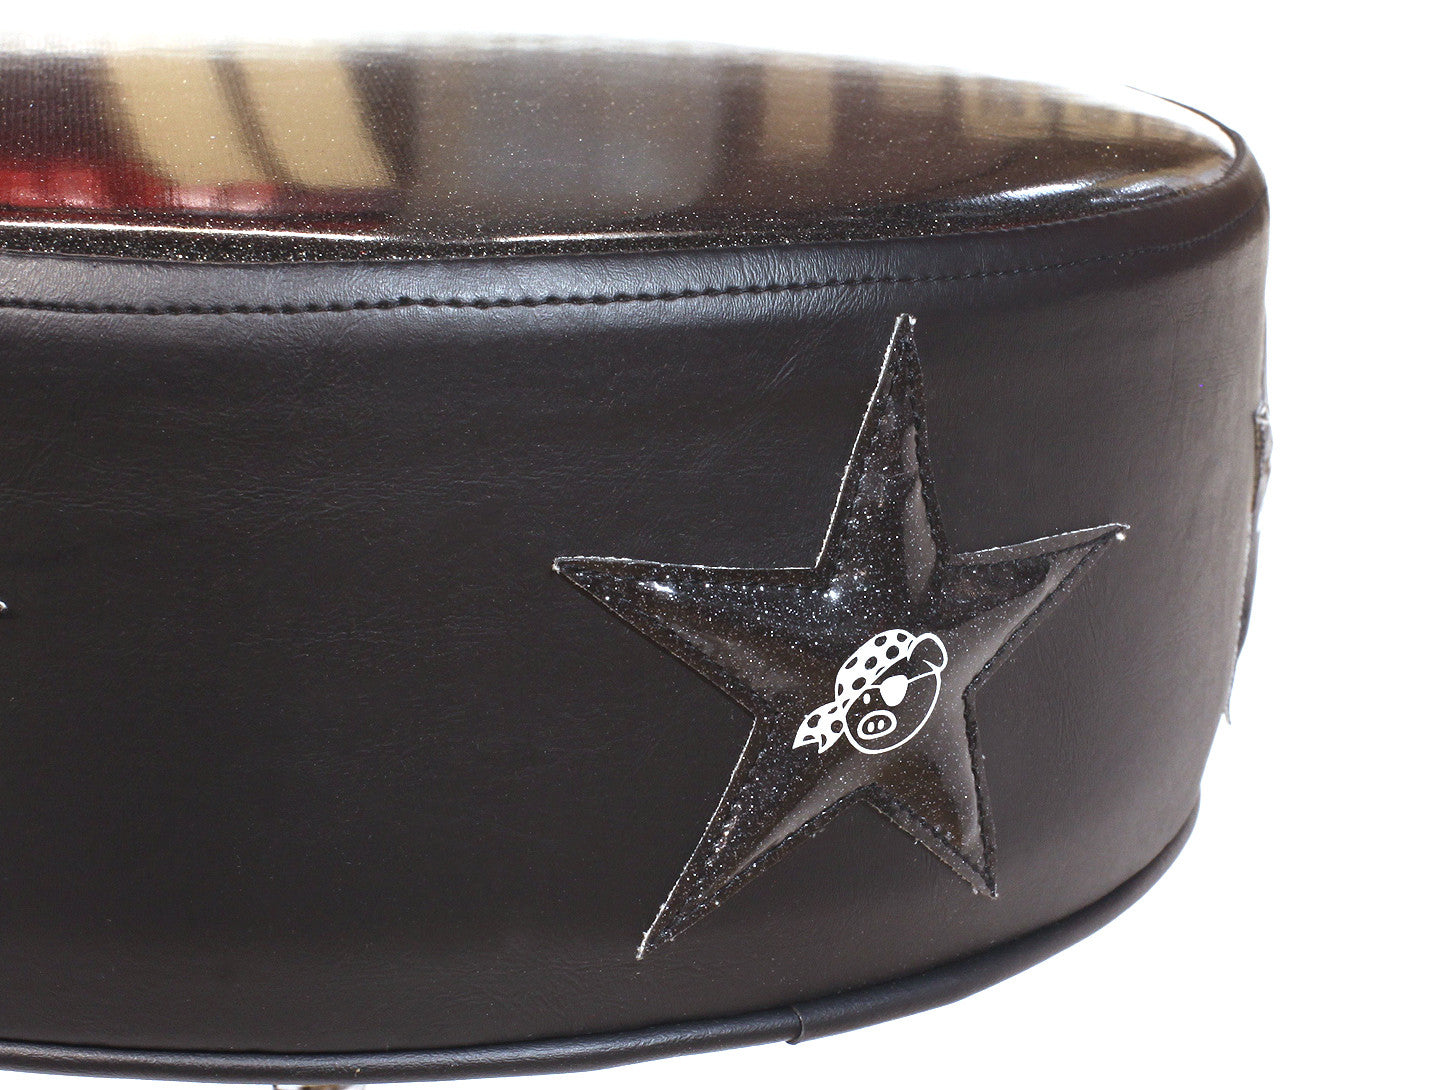 Pork Pie Black Star Drum Throne